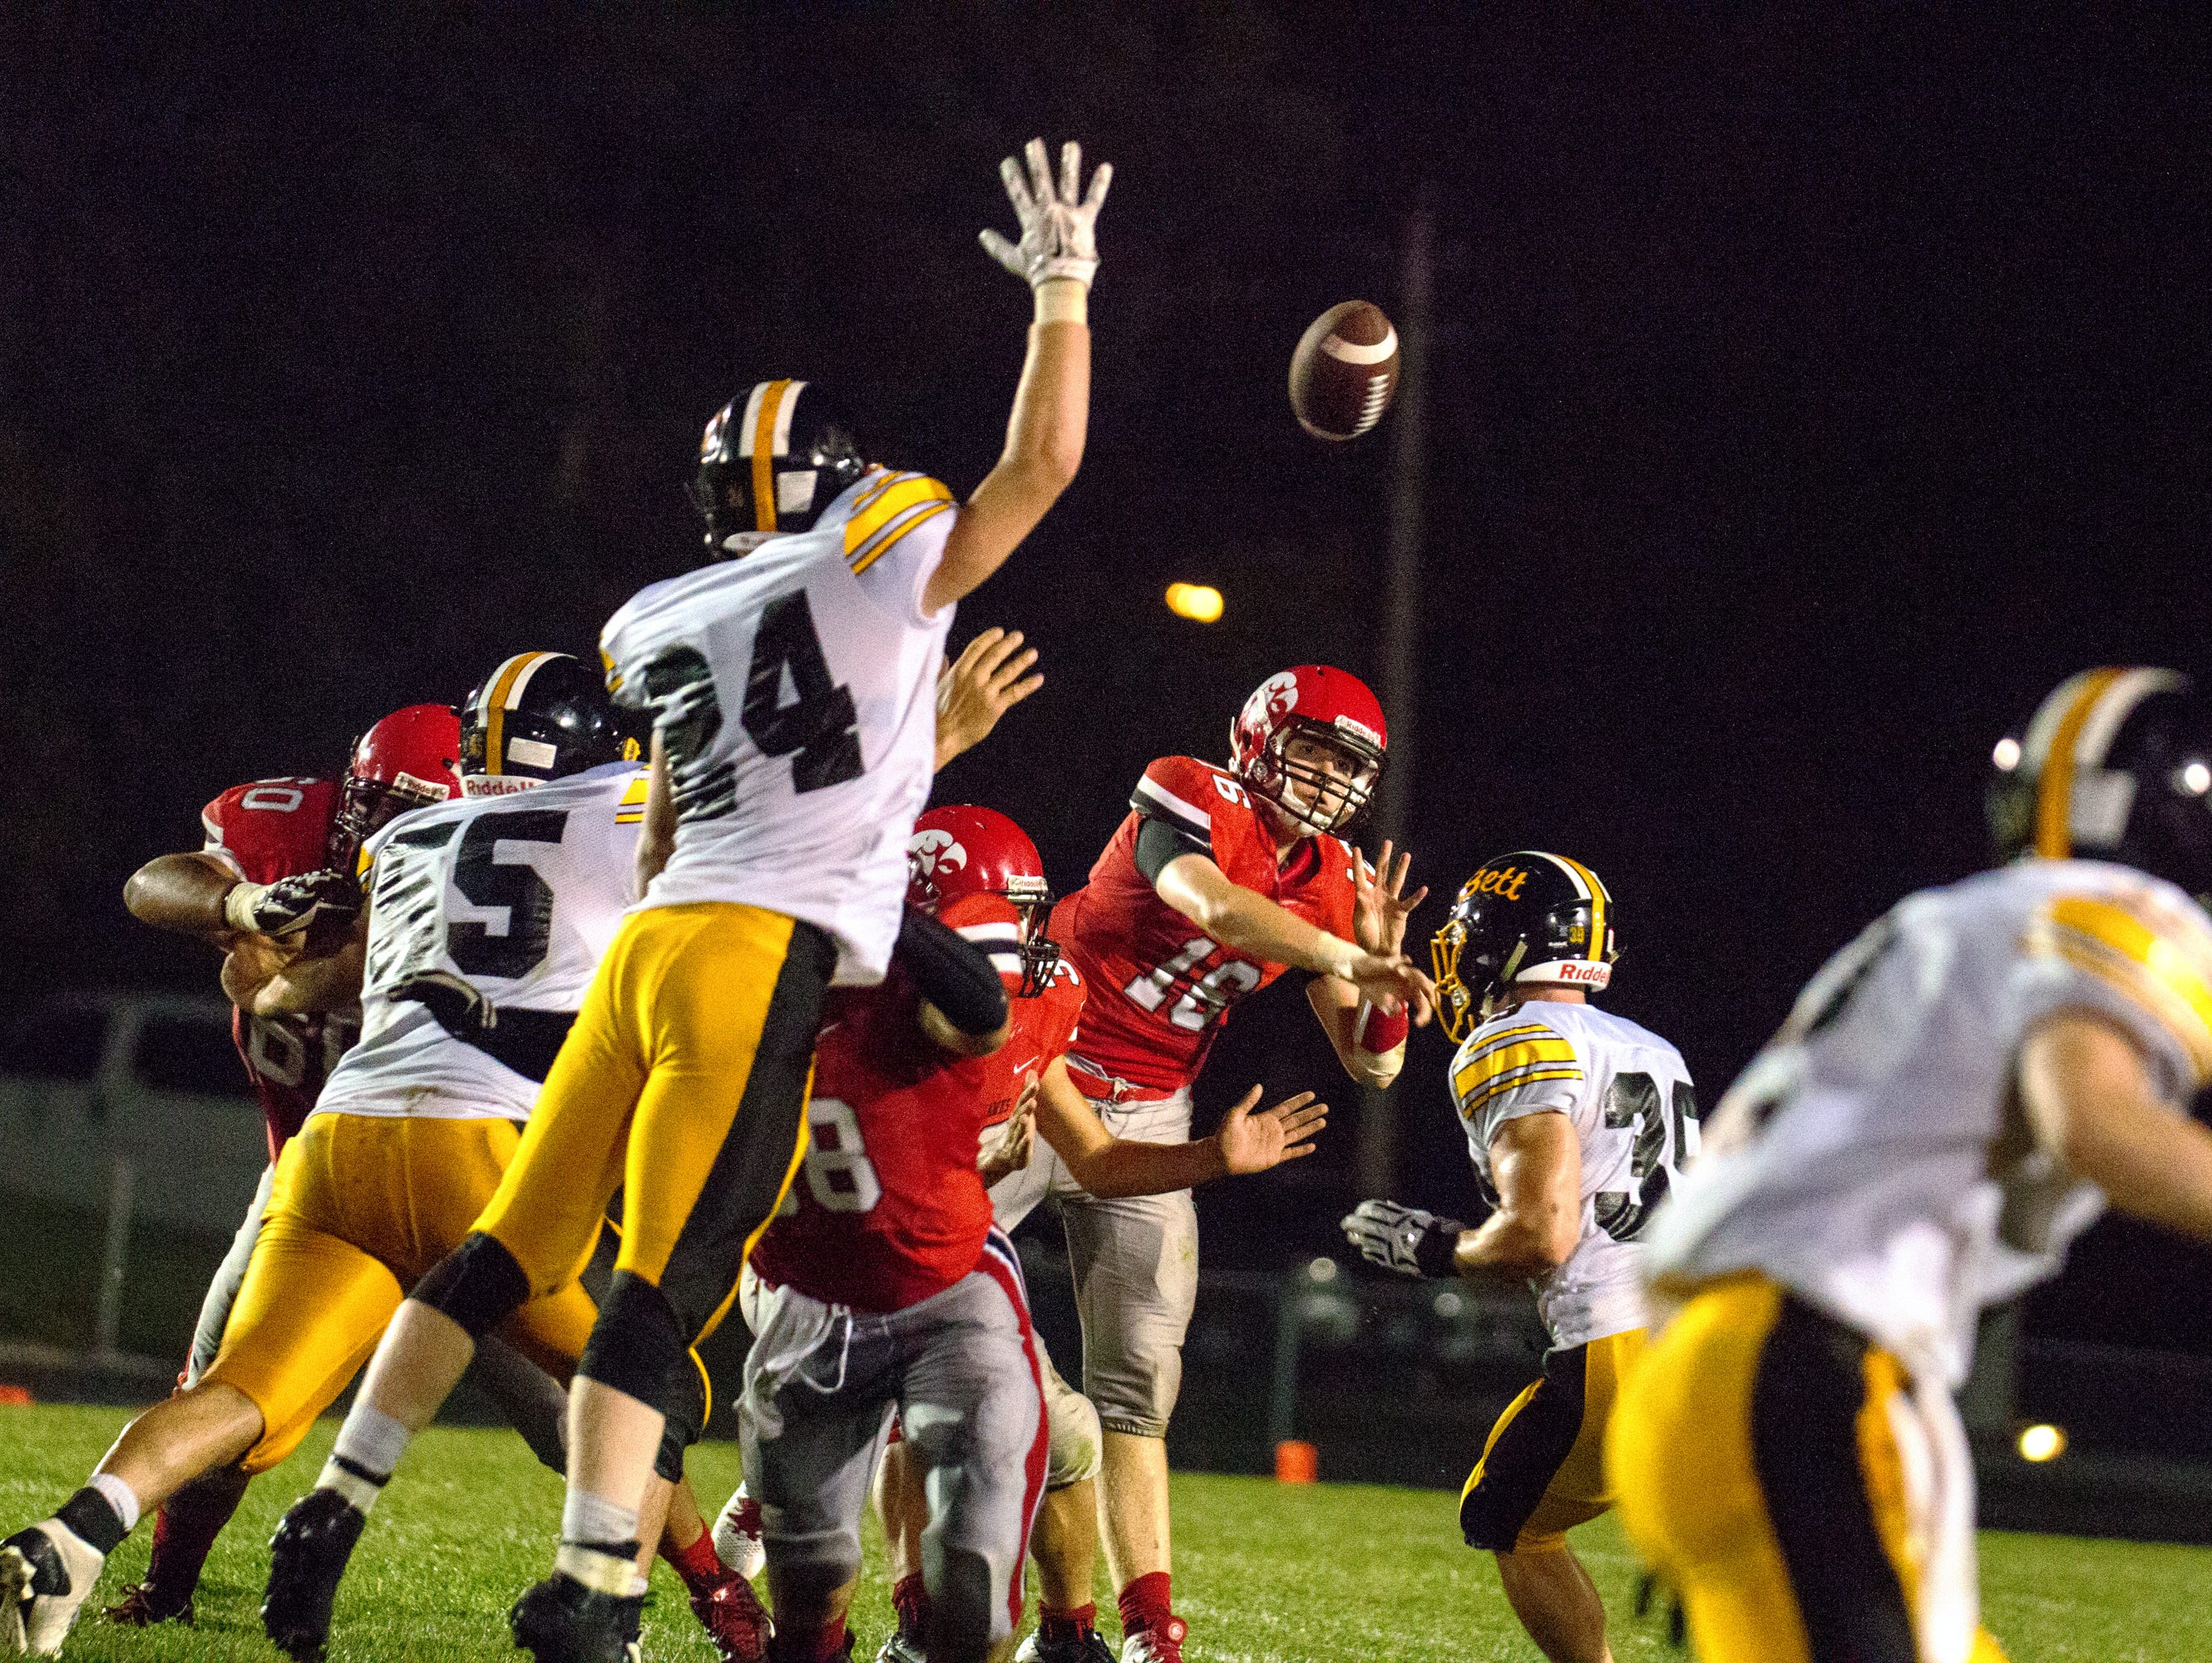 Iowa City High's Jarod Taylor (16) launches a pass against Bettendorf at Bates Field in Iowa City on Friday, September 4, 2015.